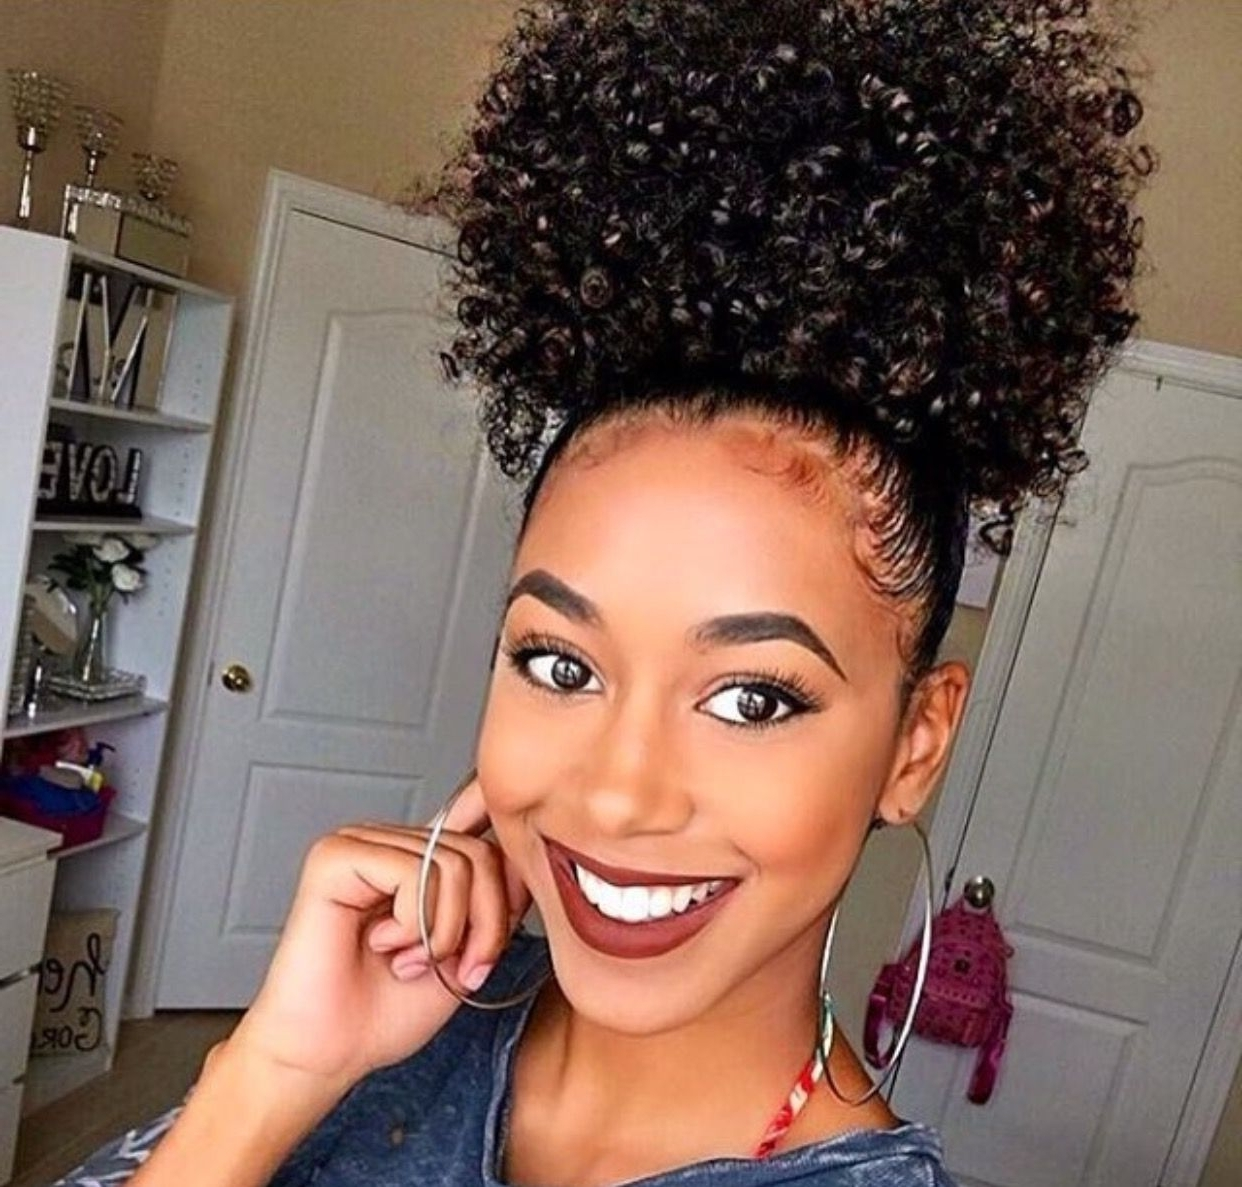 Most Recent Stylish Supersized Ponytail Hairstyles For Pinlisa Humphrey On Black Woman (View 12 of 20)